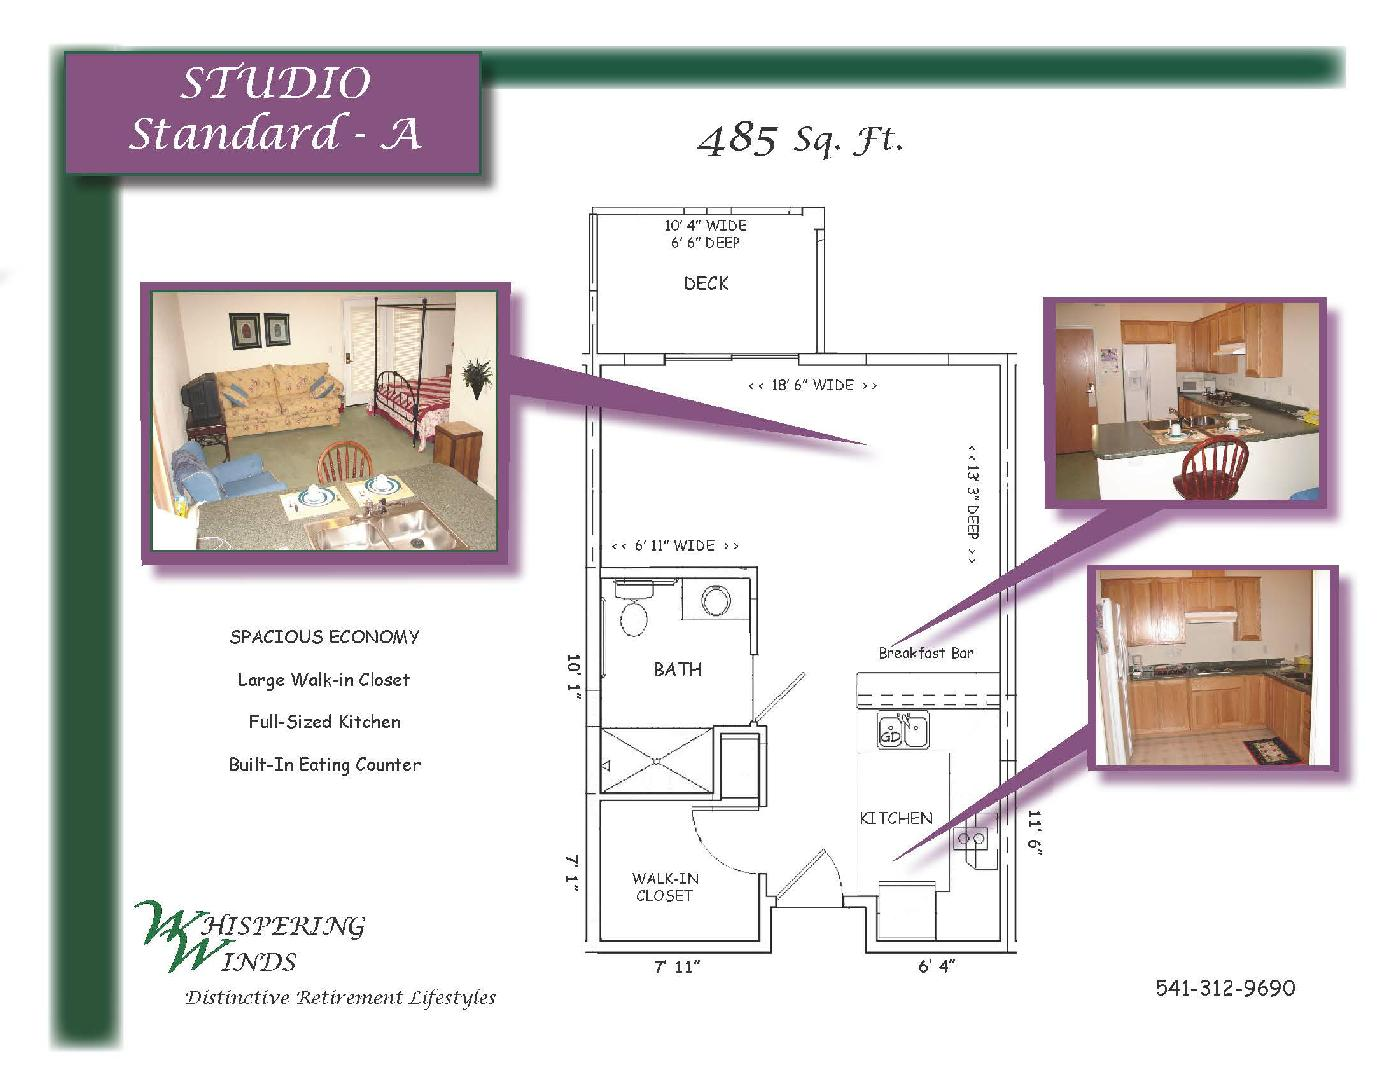 Layout Example - Studio Standard - A